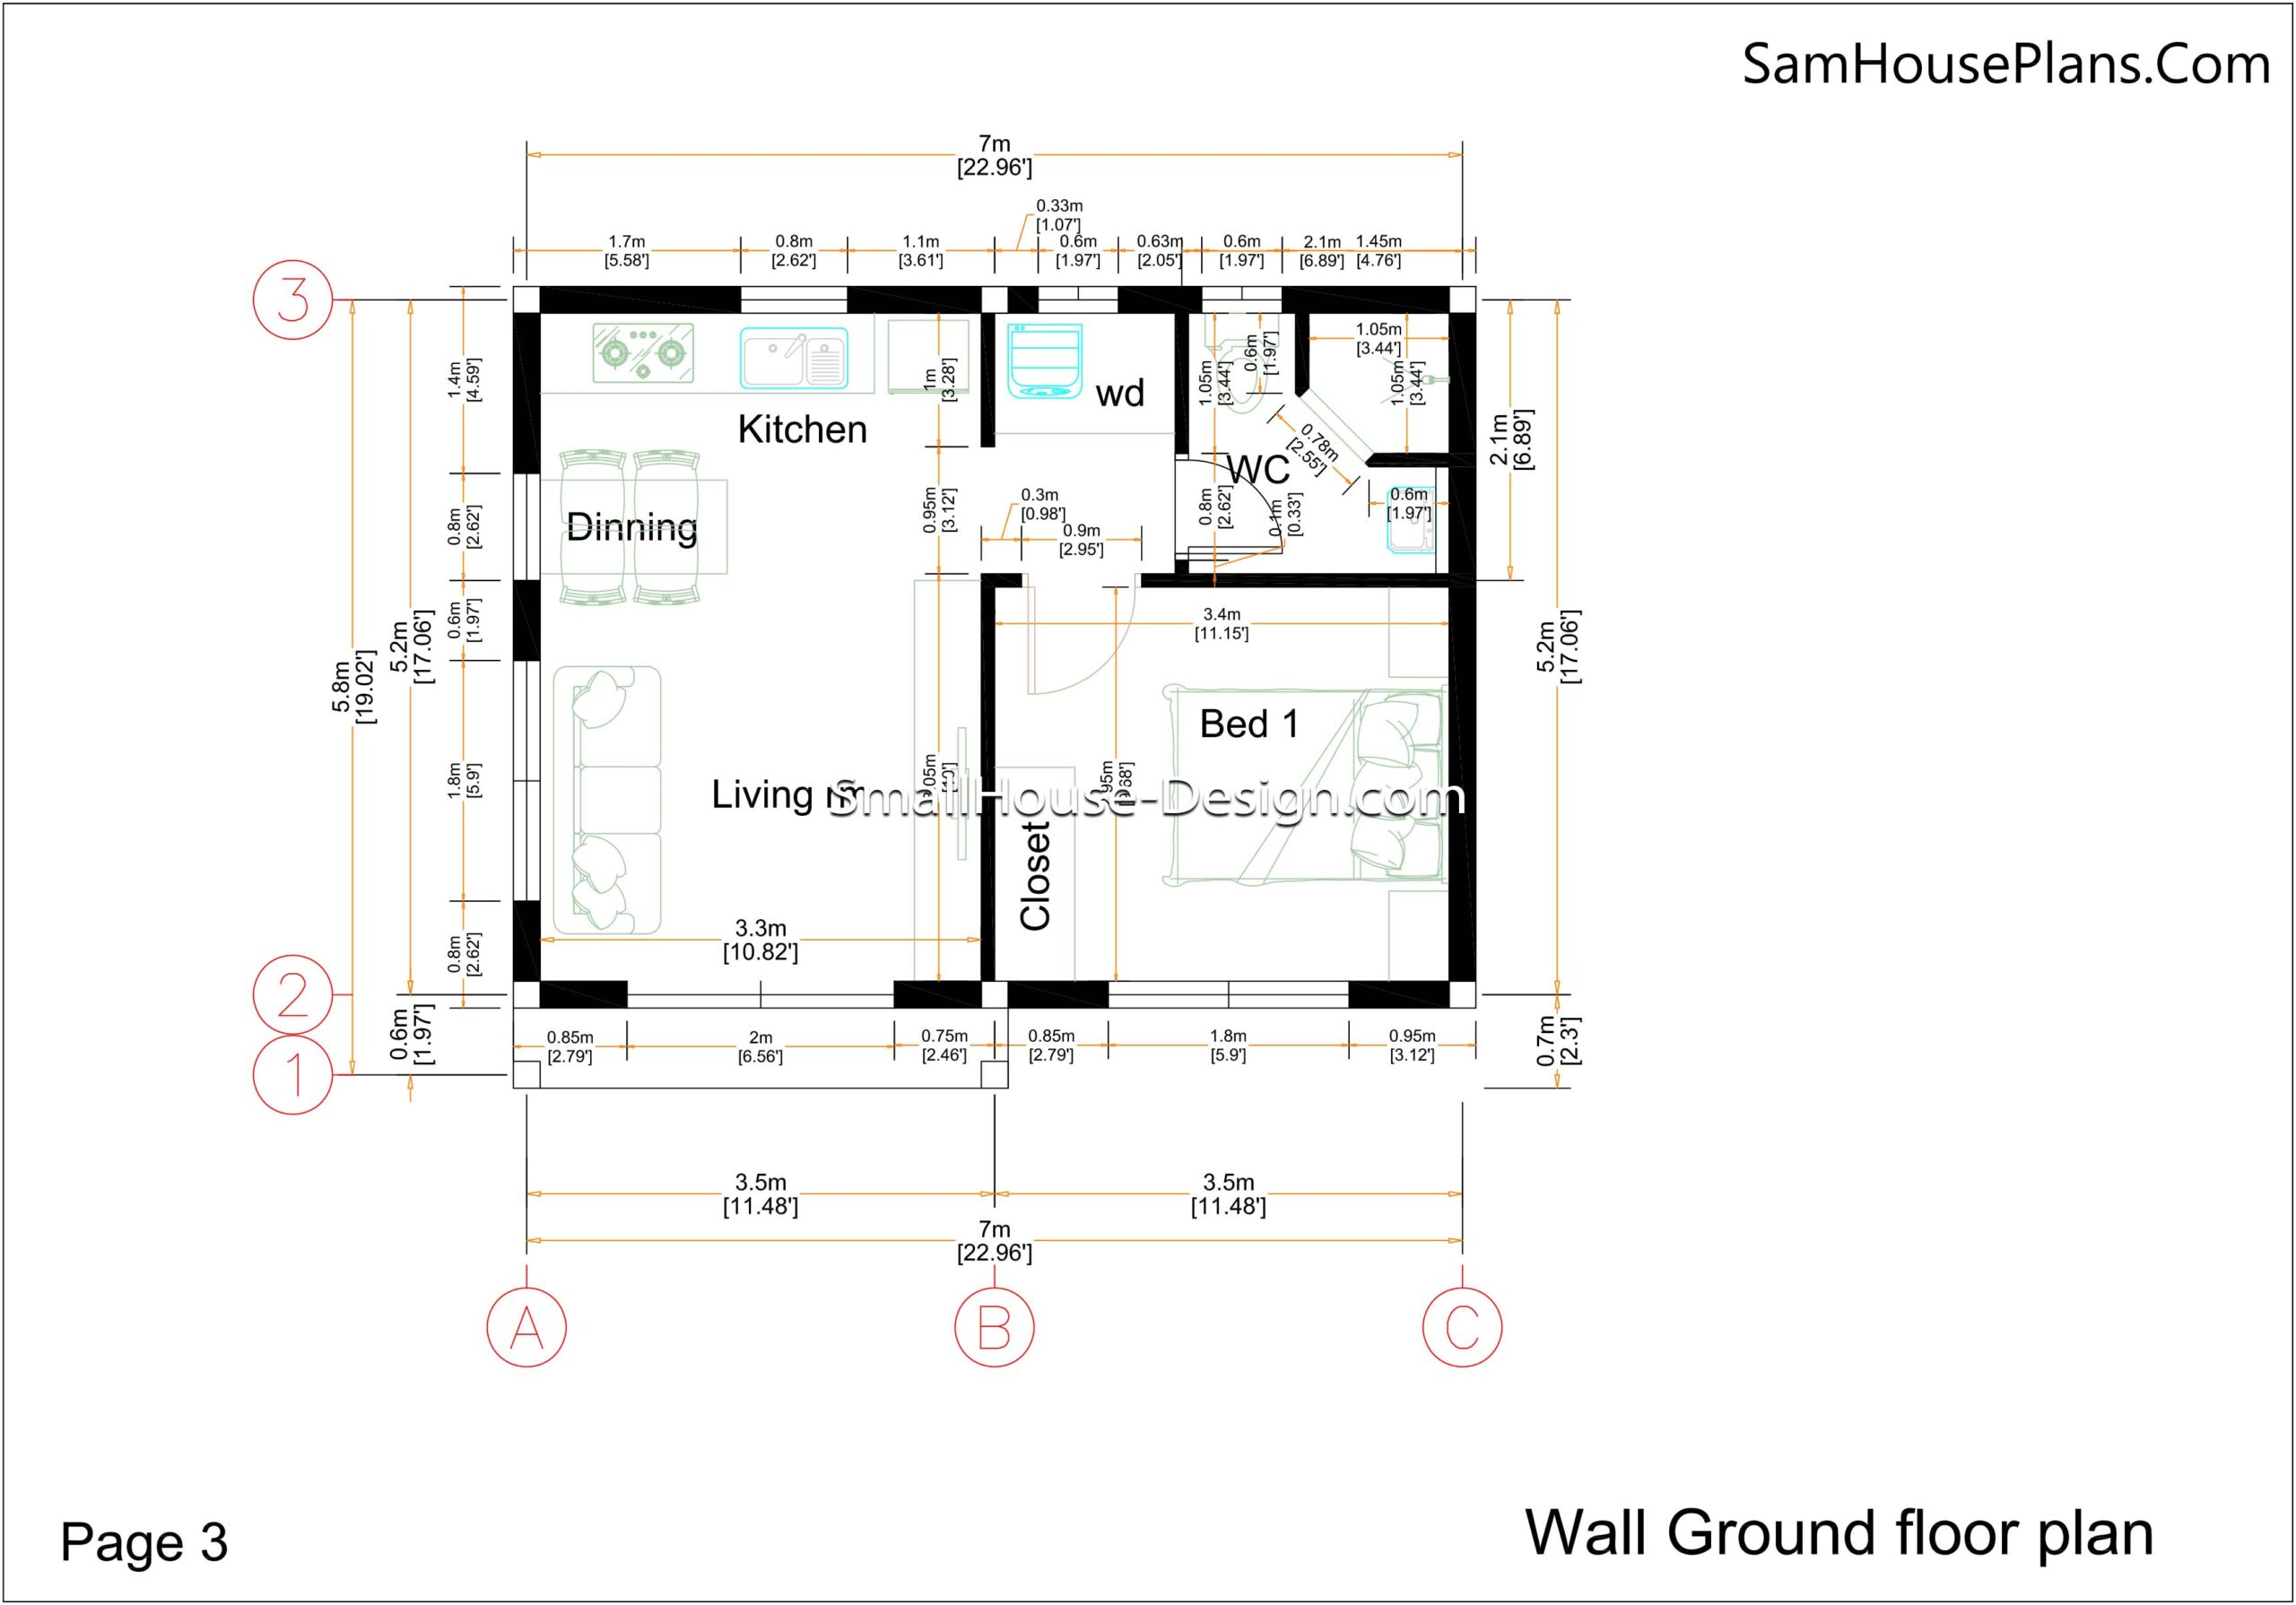 03- Wall detailing floor plan Small House Design 7x6 Shed Roof 1 Bed PDF Full Plans